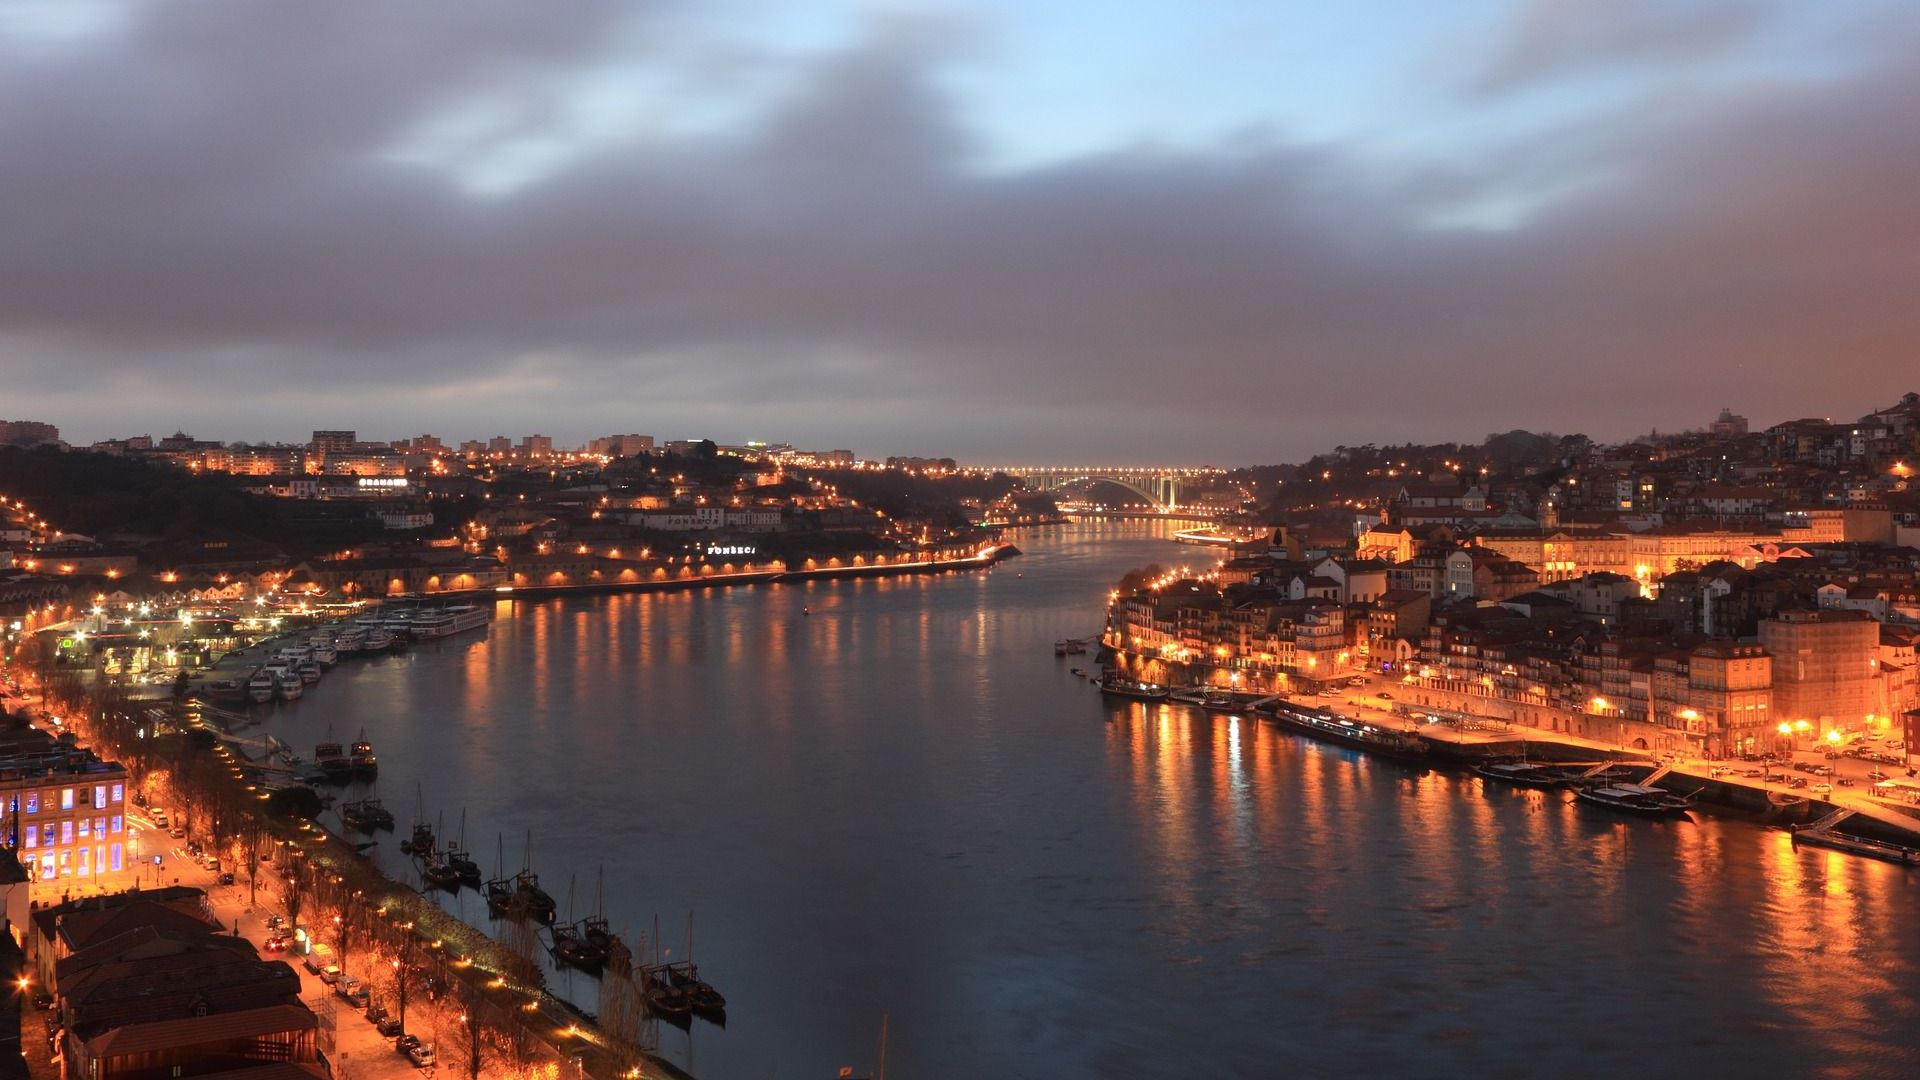 Douro river at night